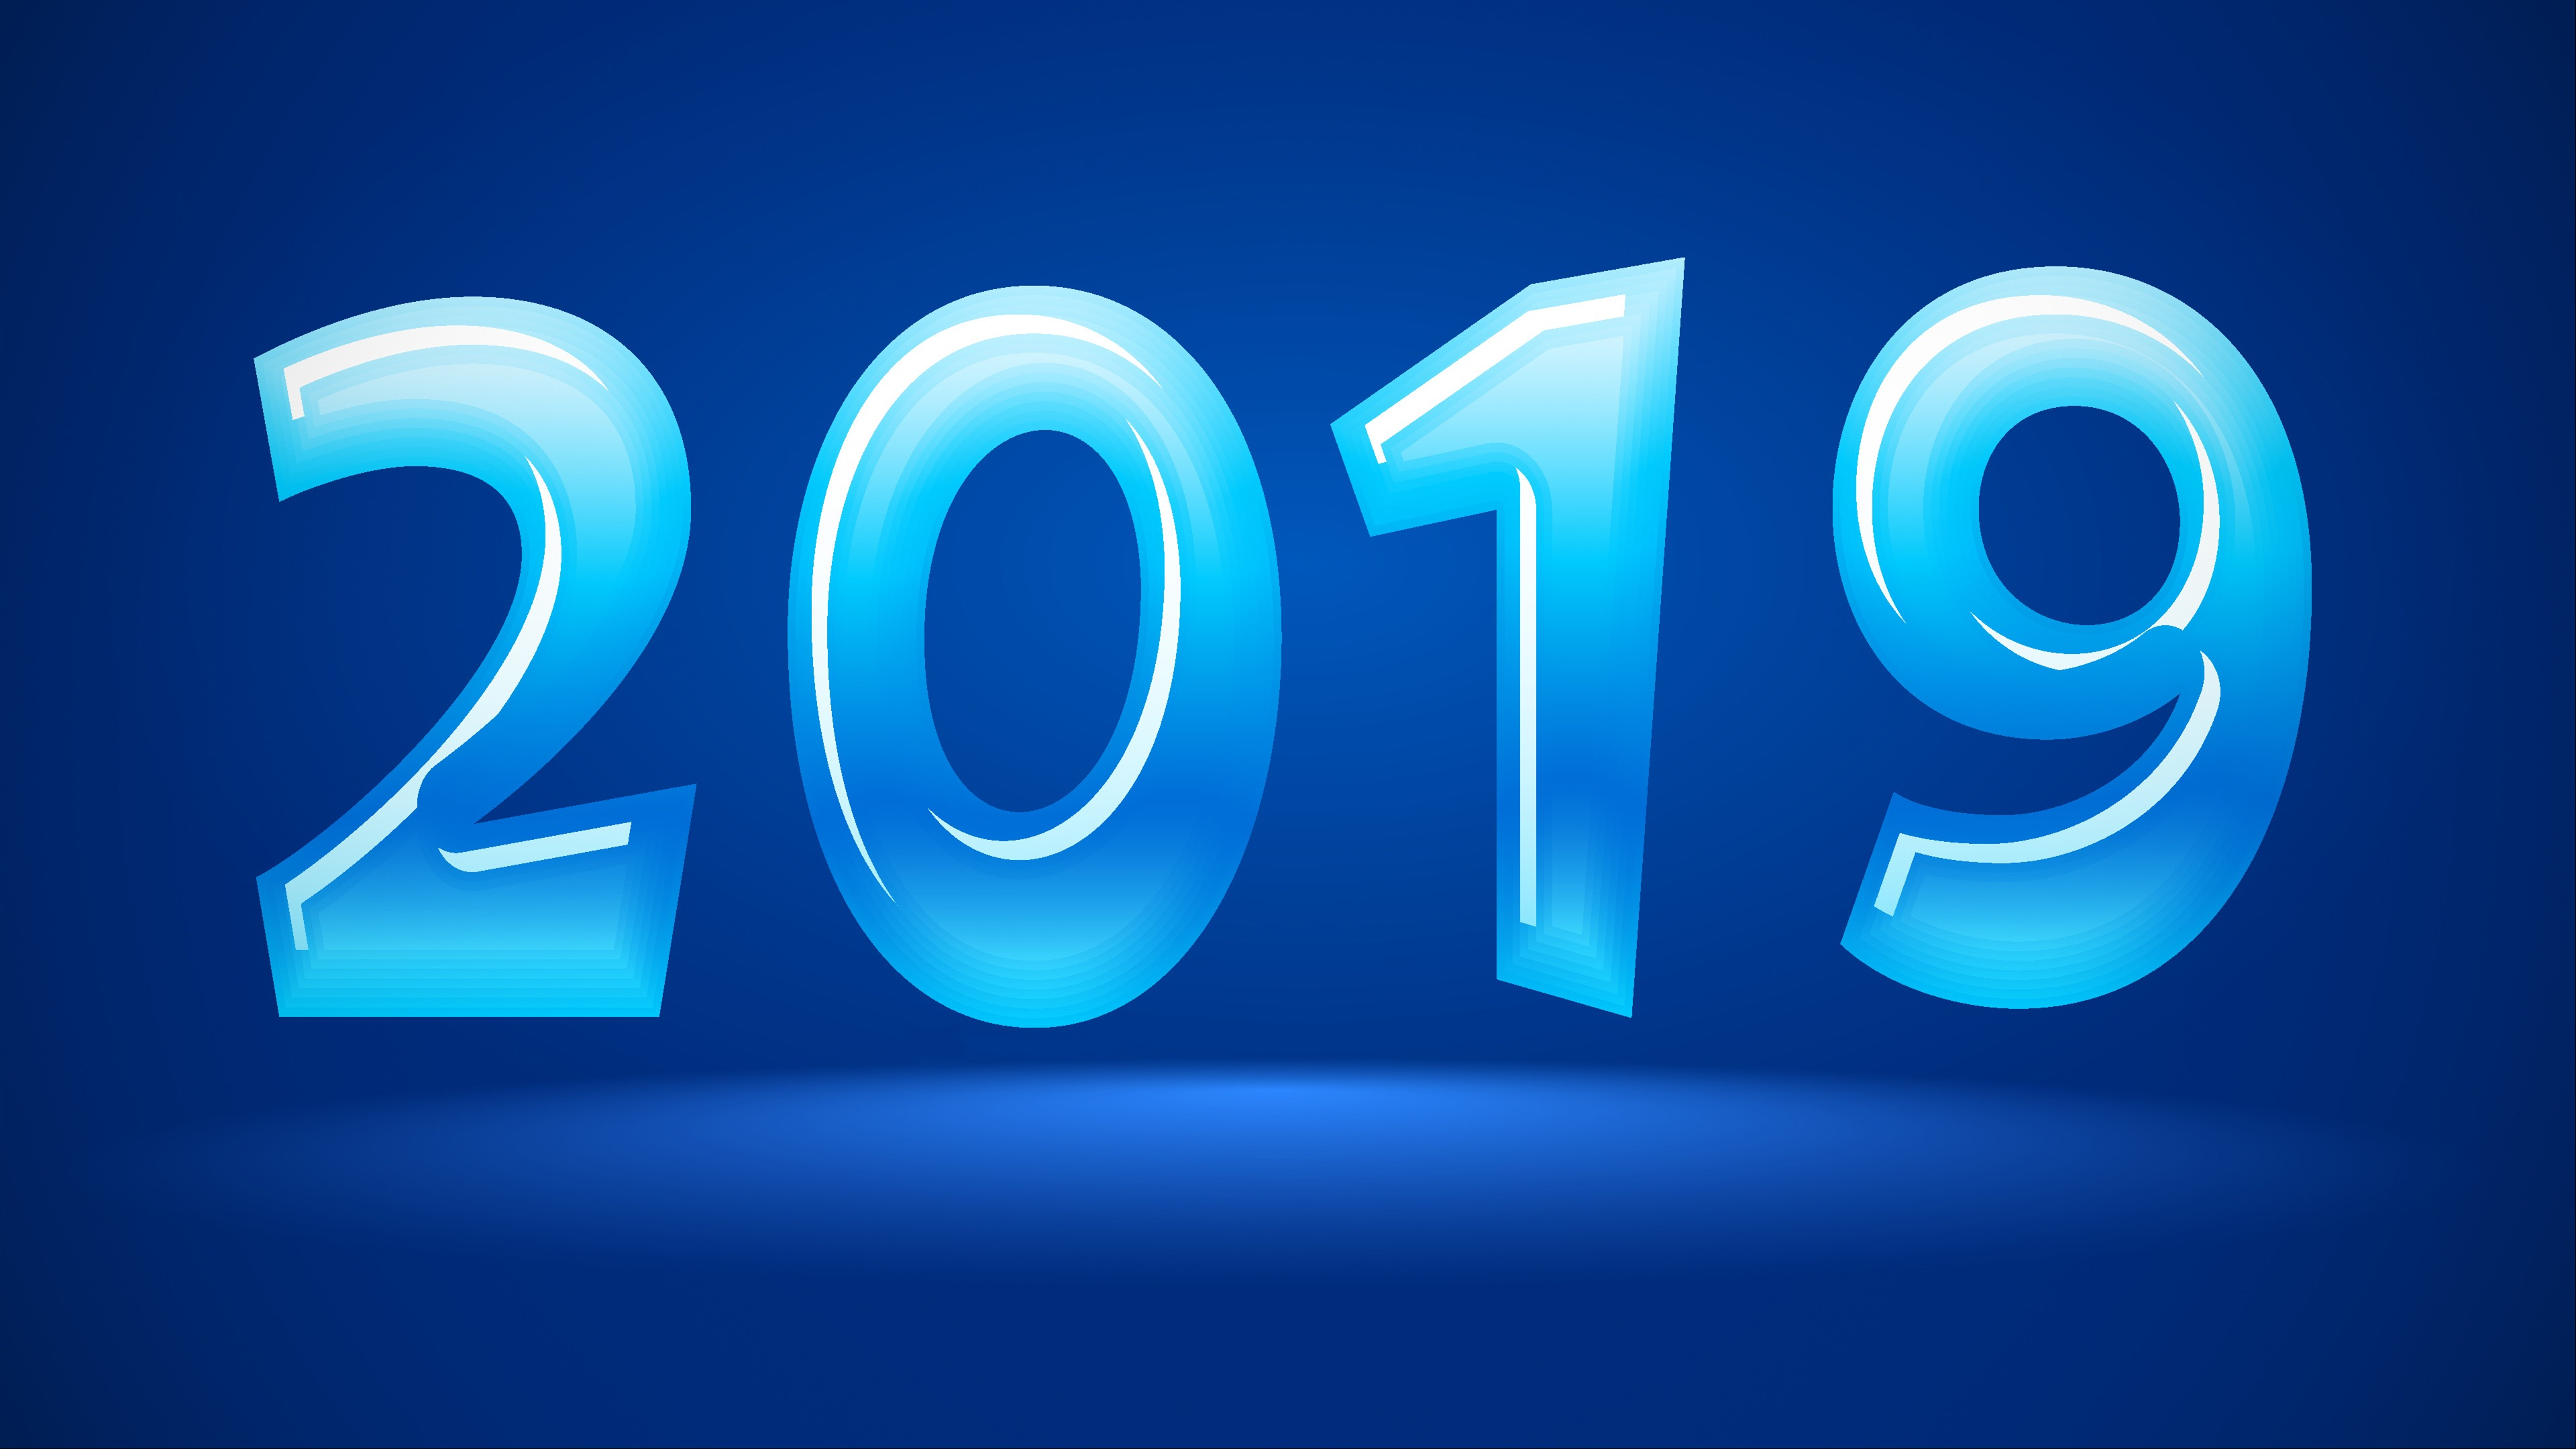 2019 New Year Abstract Blue Background High Quality